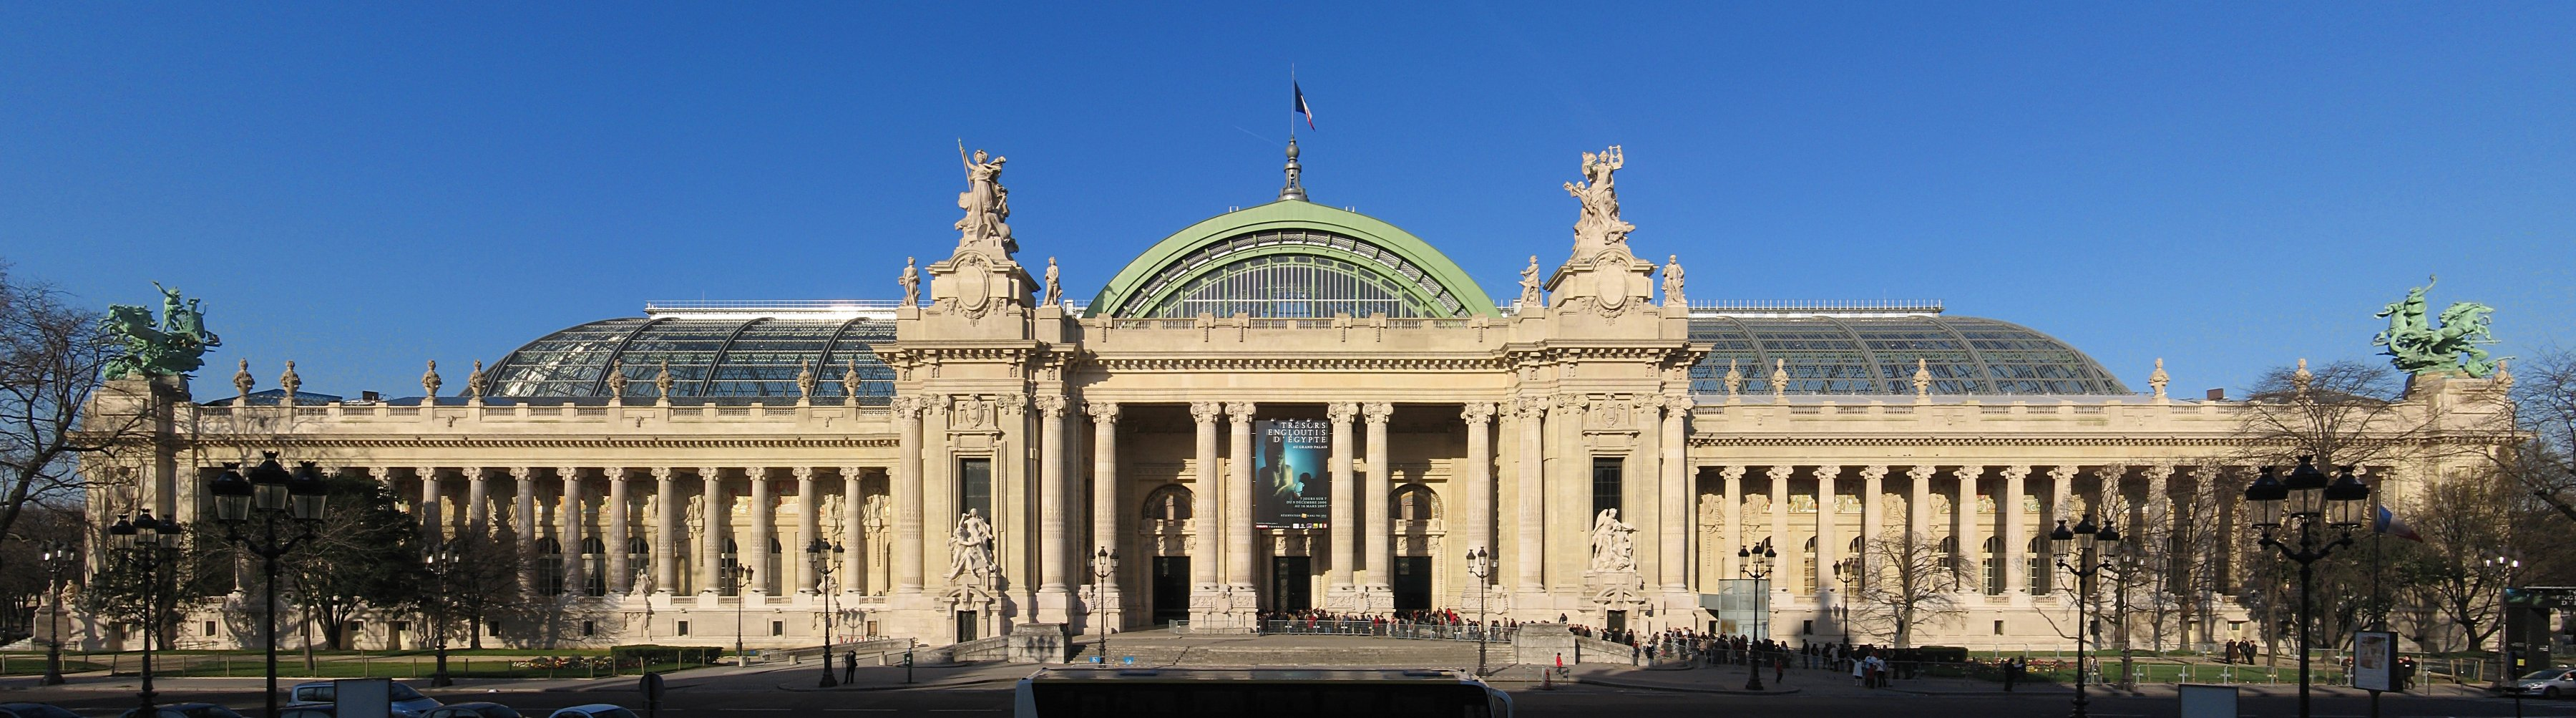 PanoramiqueGrandPalais-3600